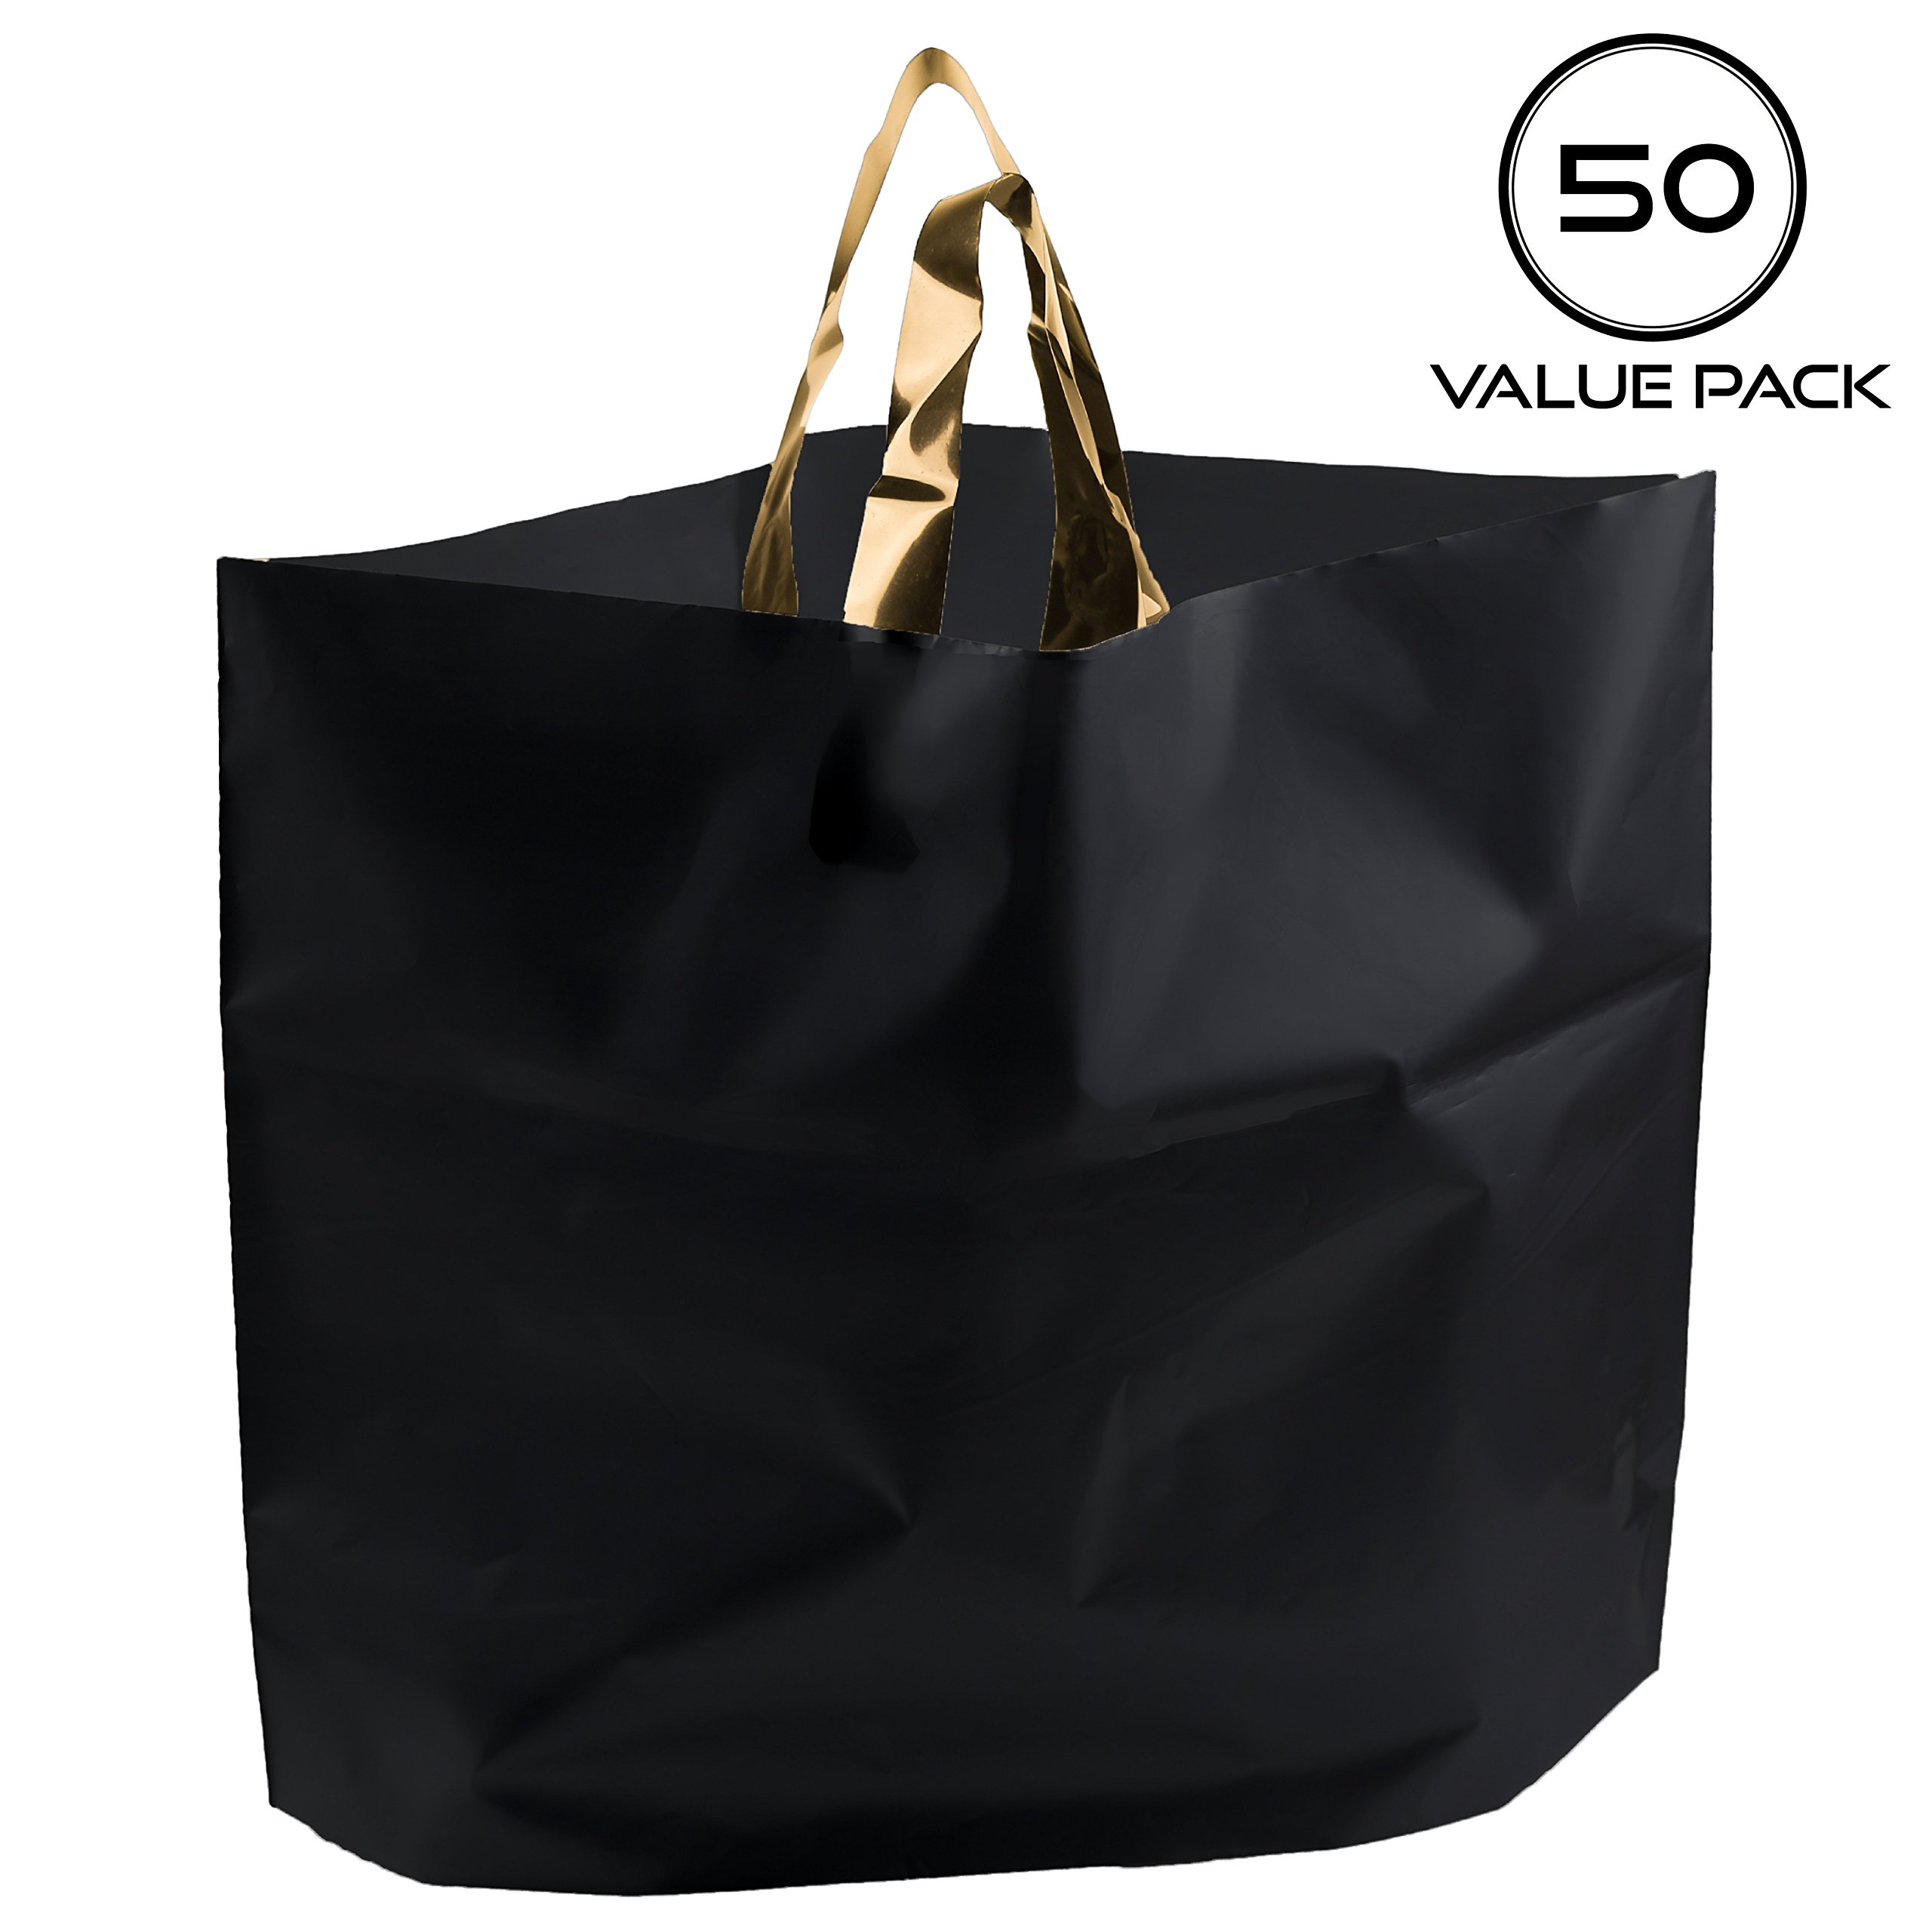 14''x18'' Large Boutique Merchandise Bags 3 Mil Extra Thick, 50 Frosted Plastic Gift Shopping Bags with Handles Bottom Gusset for Retail Clothing Grocery Store Lularoe